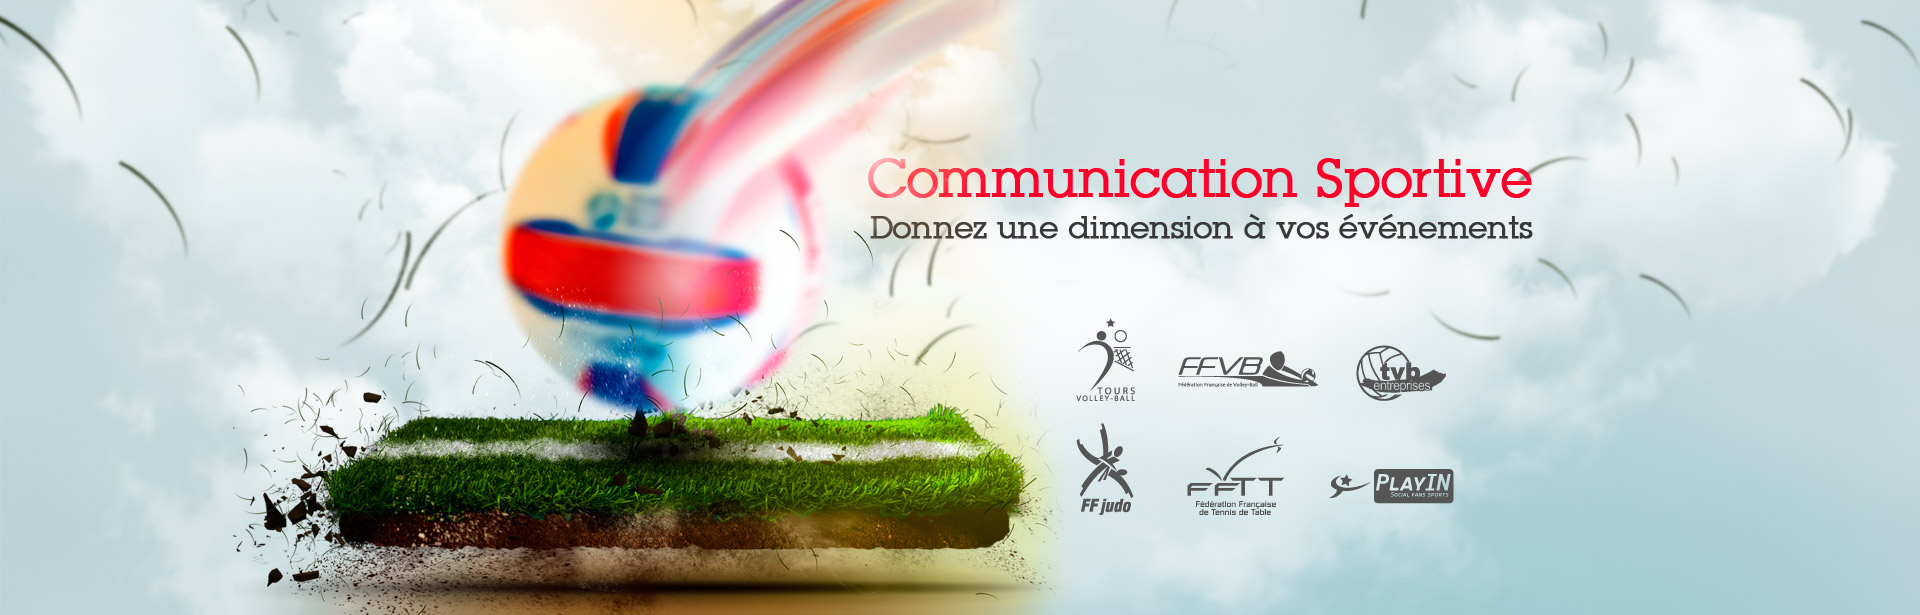 Communication Sportive